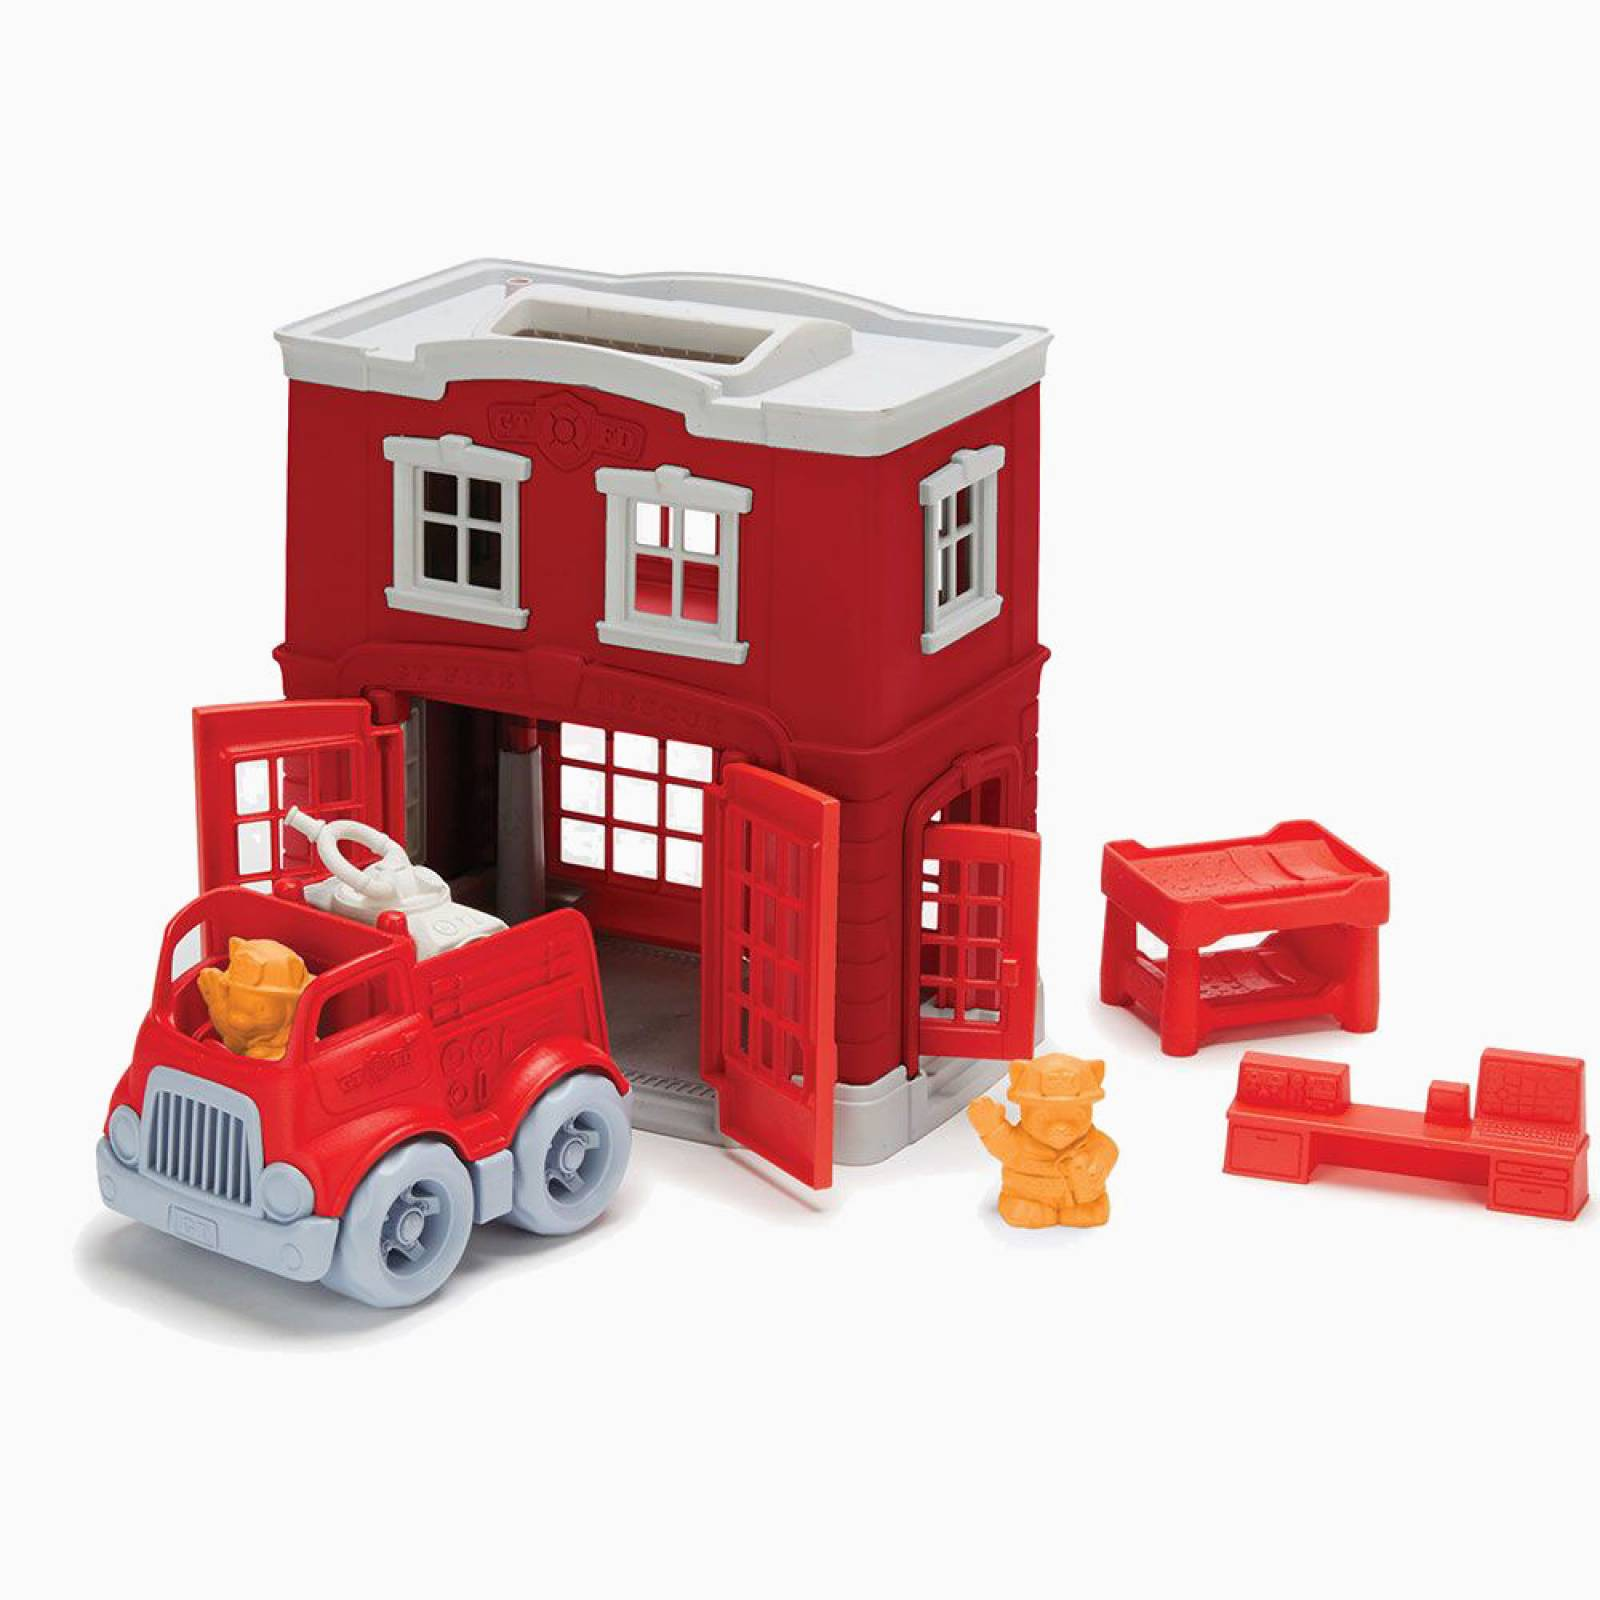 Fire Station Playset By Green Toys - Recycled Plastic 2-6yrs thumbnails